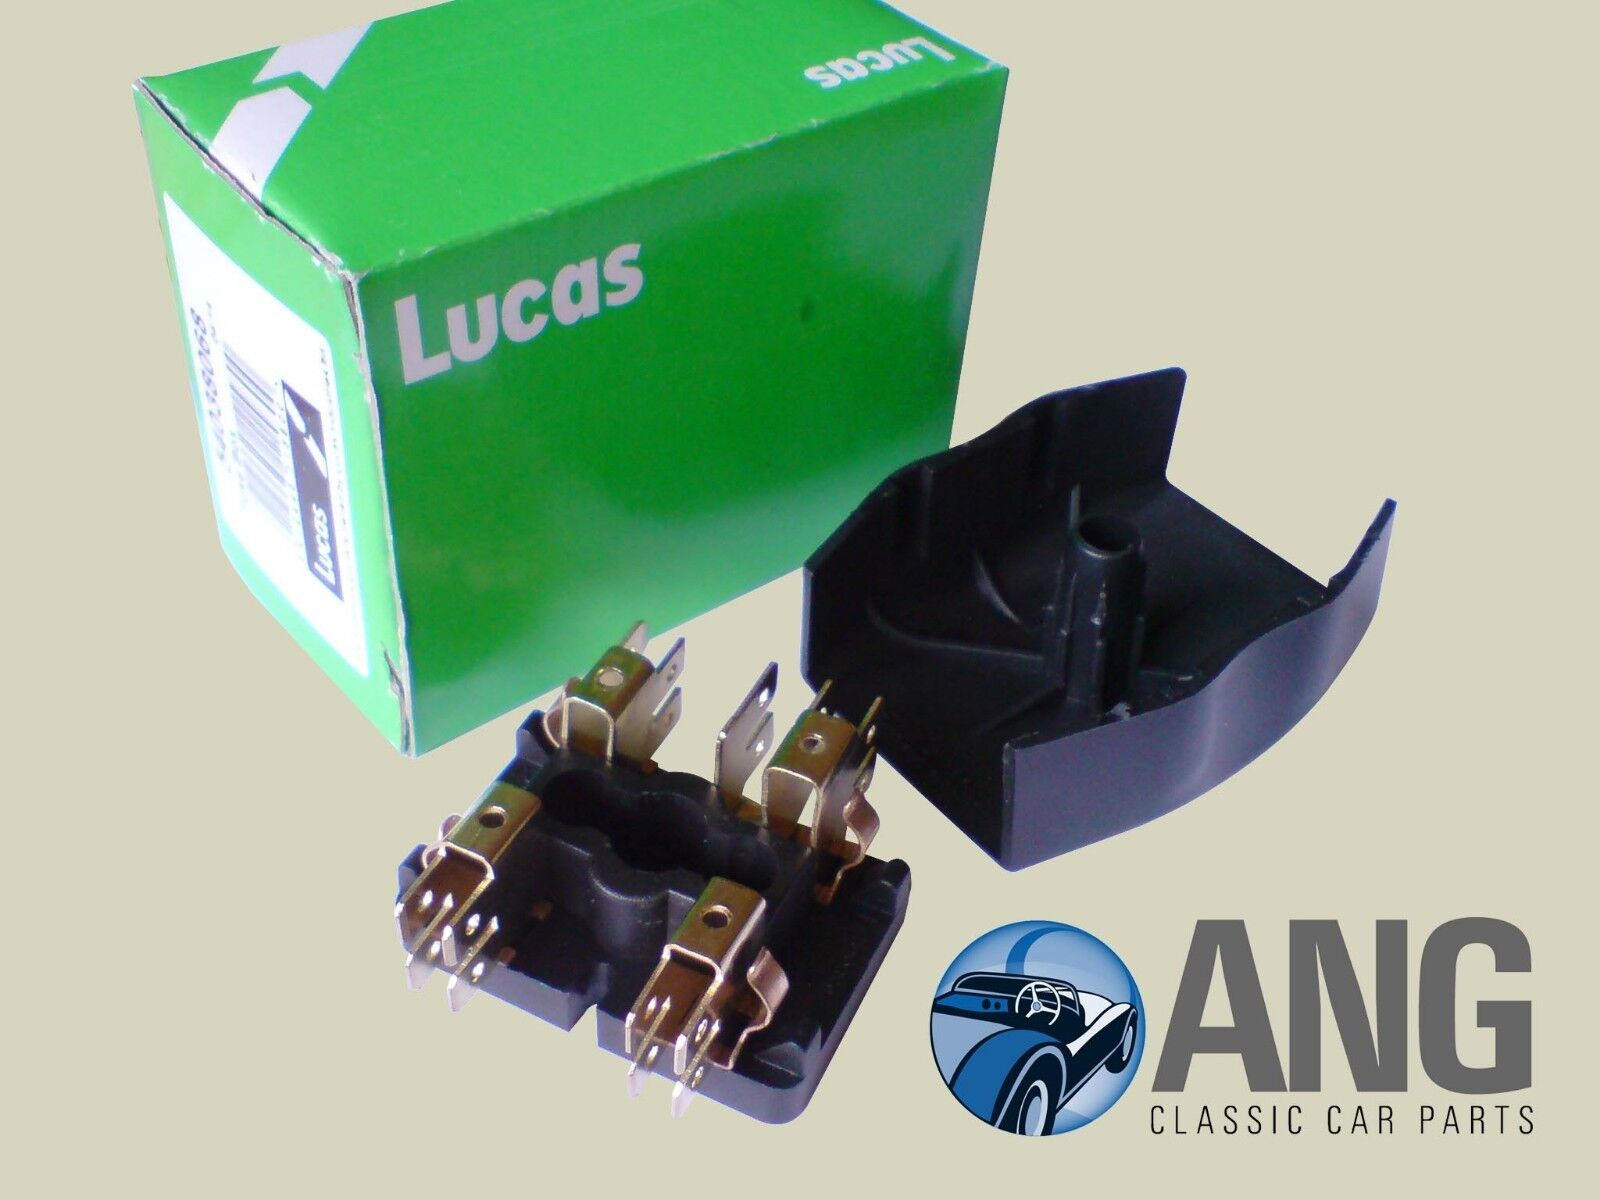 Ginetta G15 1967 1974 Lucas Fuse Box Lid 4fj 606253a 1131 Mgb 1 Of 3 See More